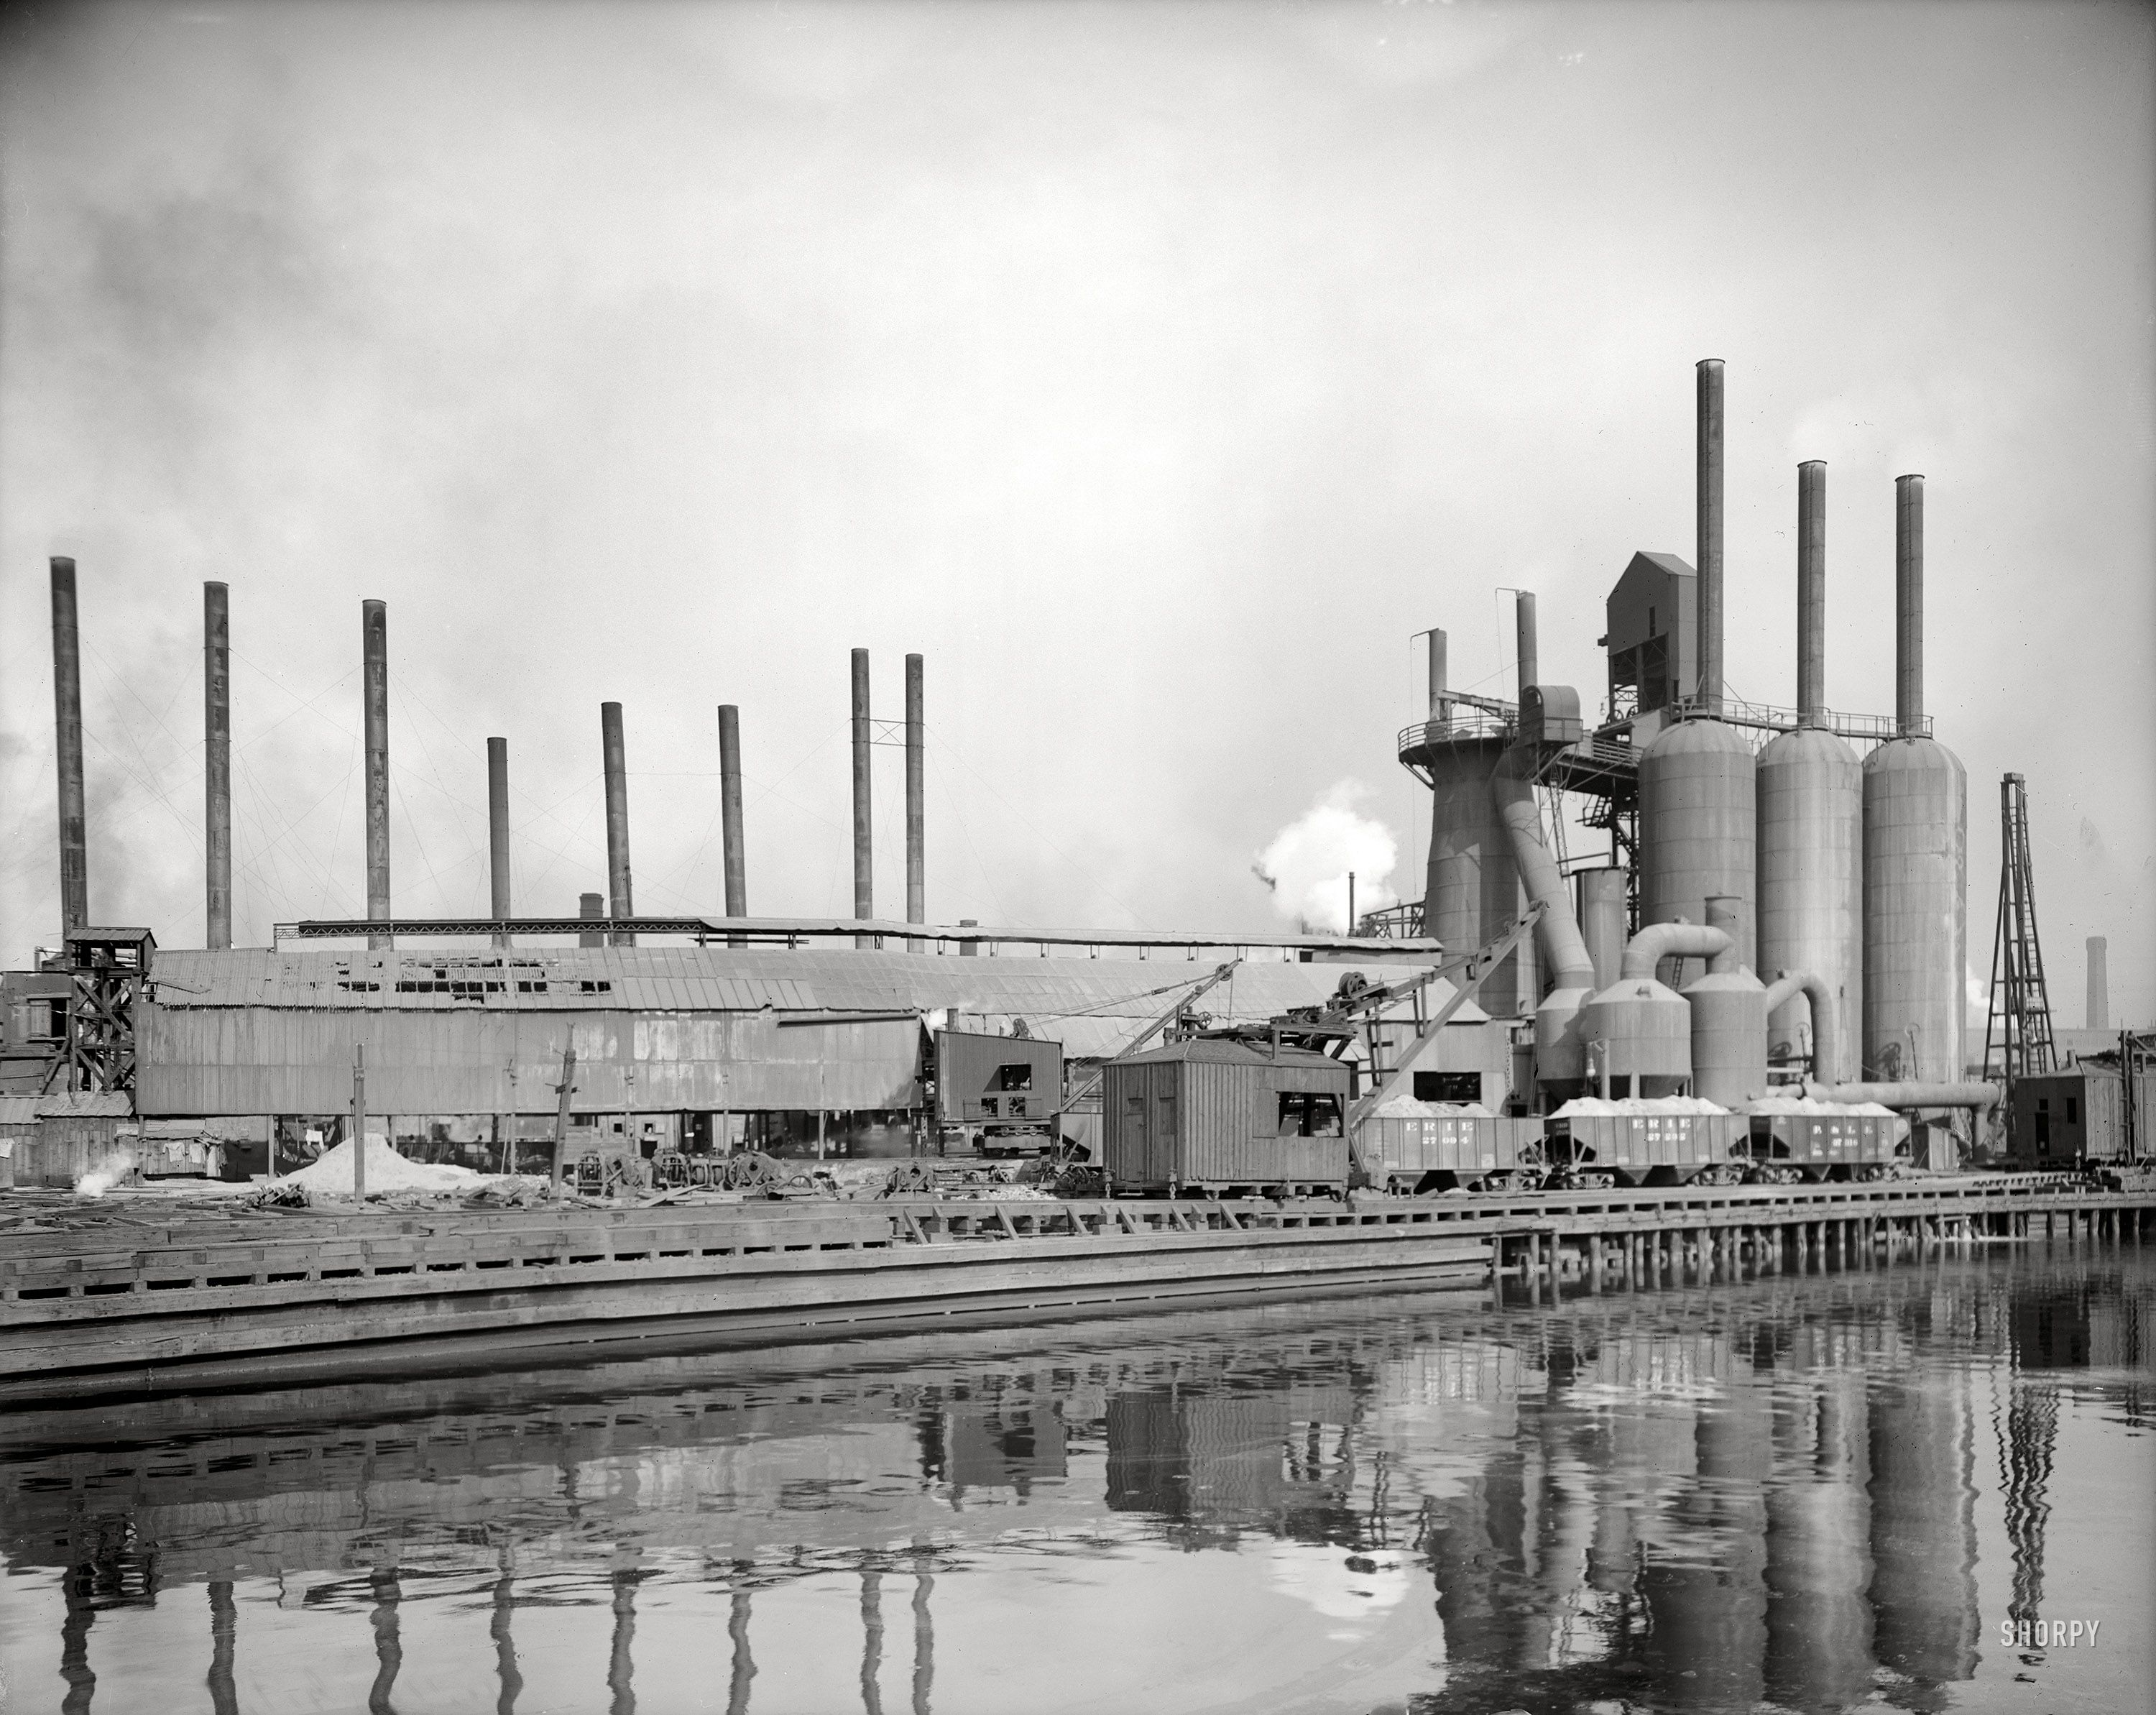 c. 1908) Central Furnace Works. Foundry of the American Steel & Wire ...